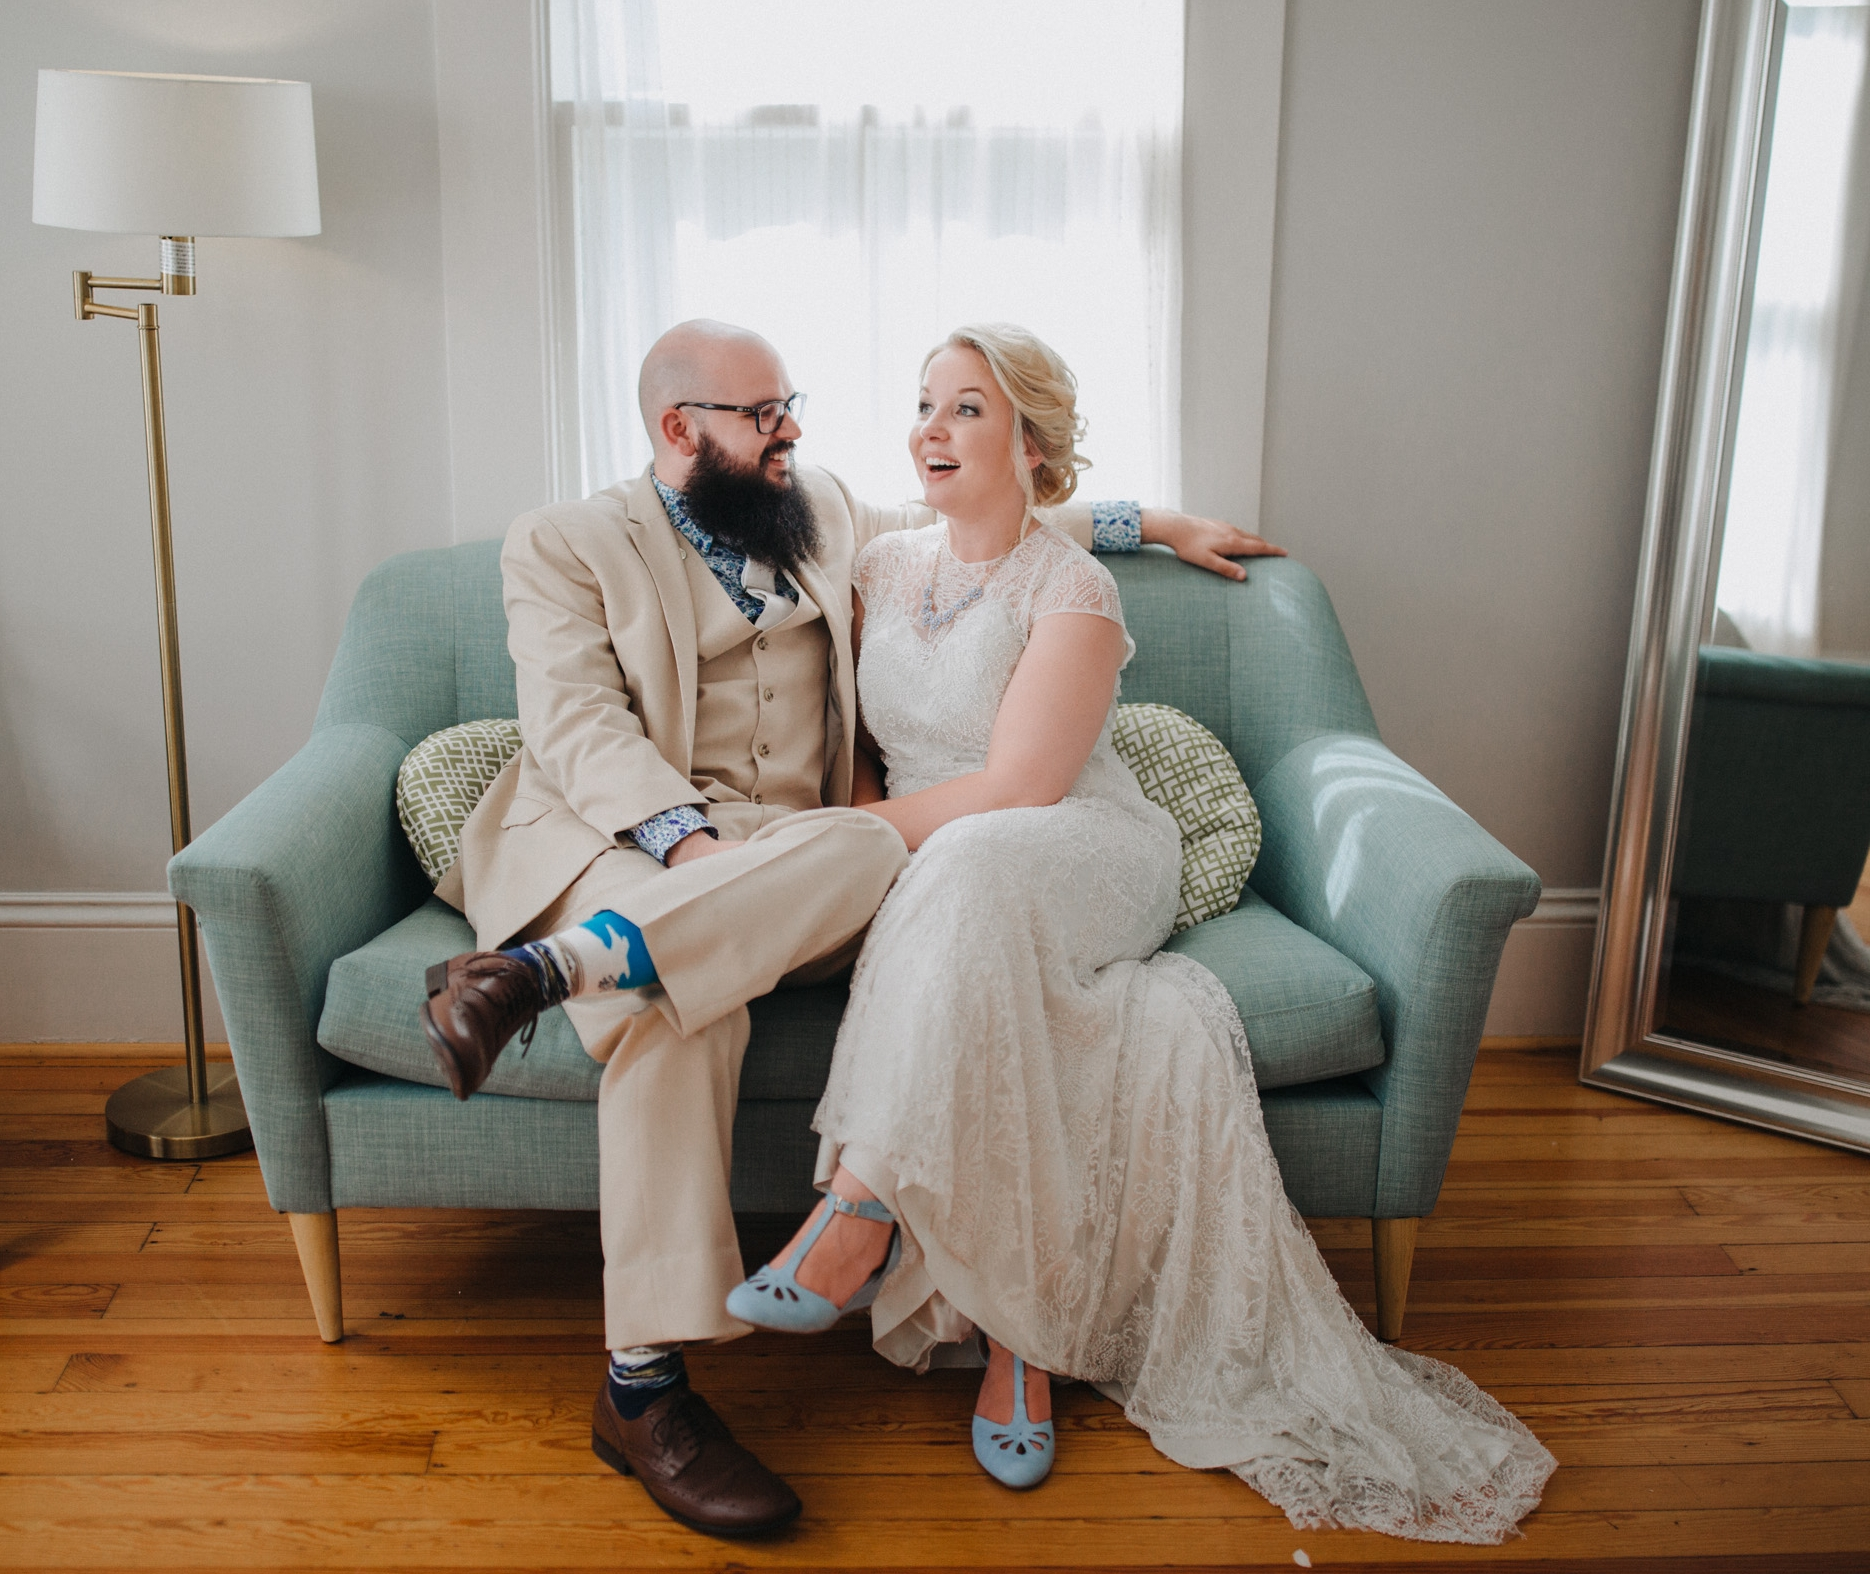 This southern charm wedding truly brought to life the love that can be shared amongst family and friends as any true southerner would… In the summer breeze on the front porch! Take a peek at all the southern details that were captured - Meet the Morrells!